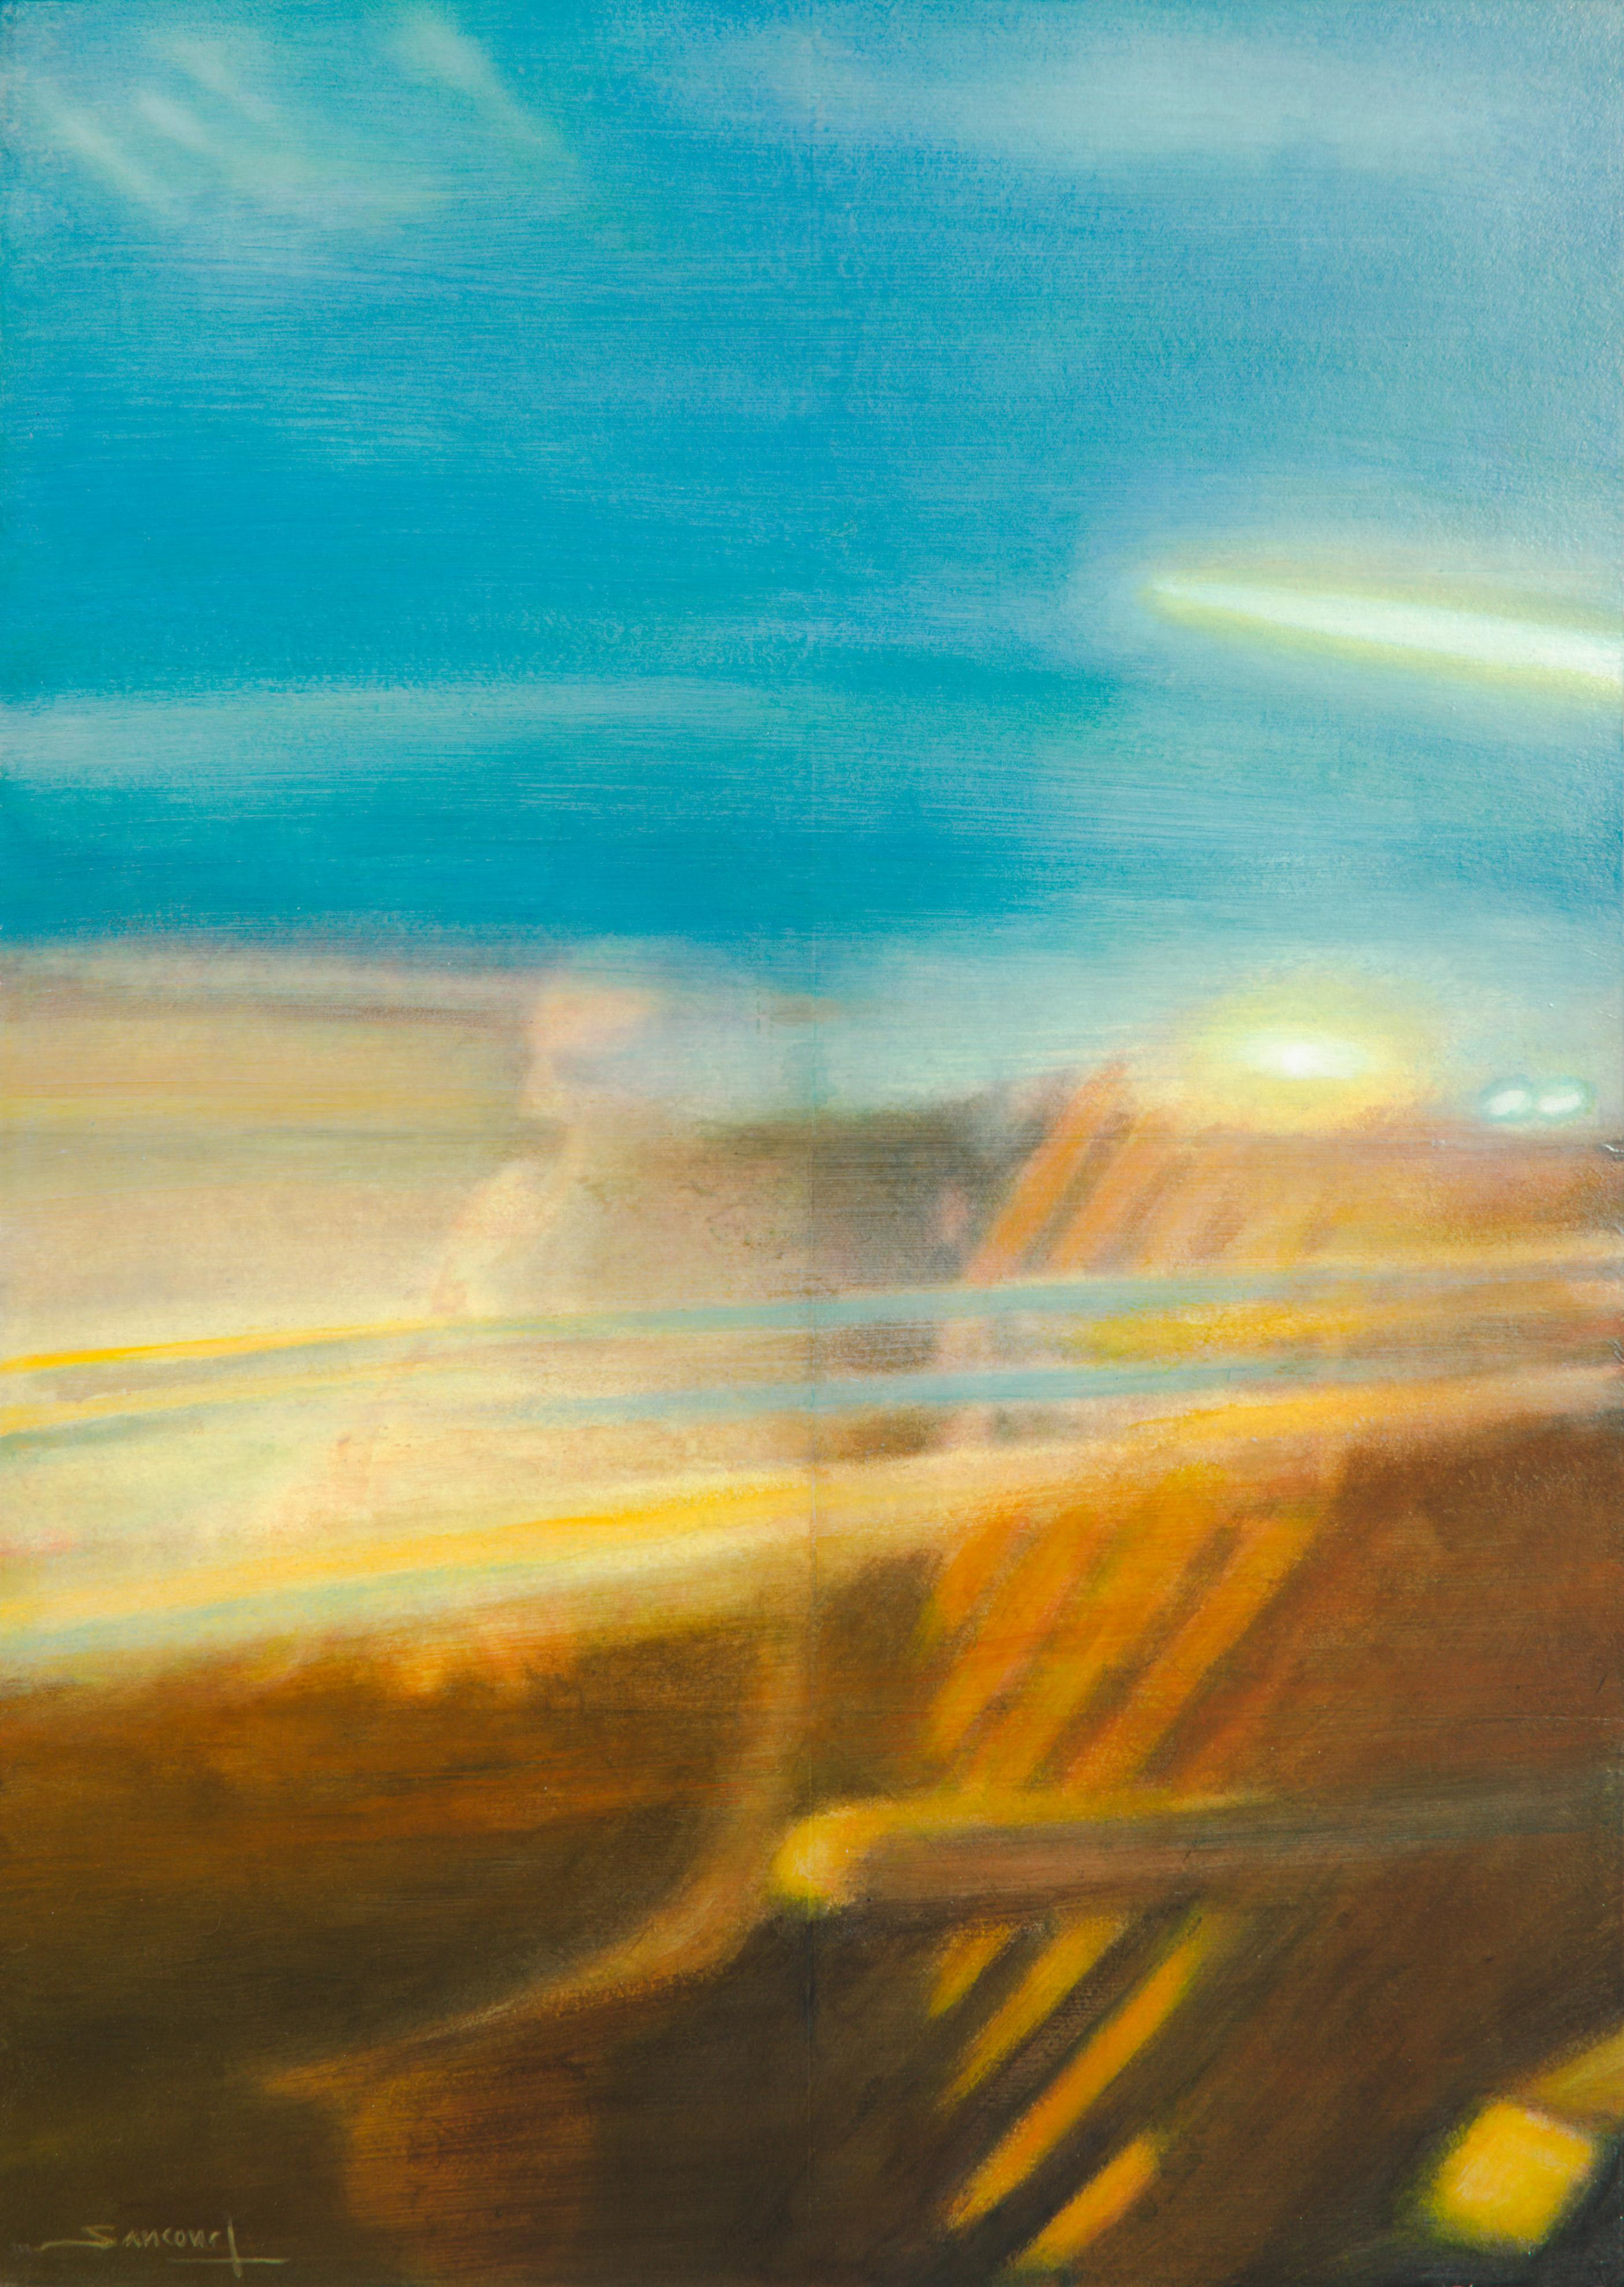 """""""Night Train #14"""", Reflection of a Passenger in the Train Window"""